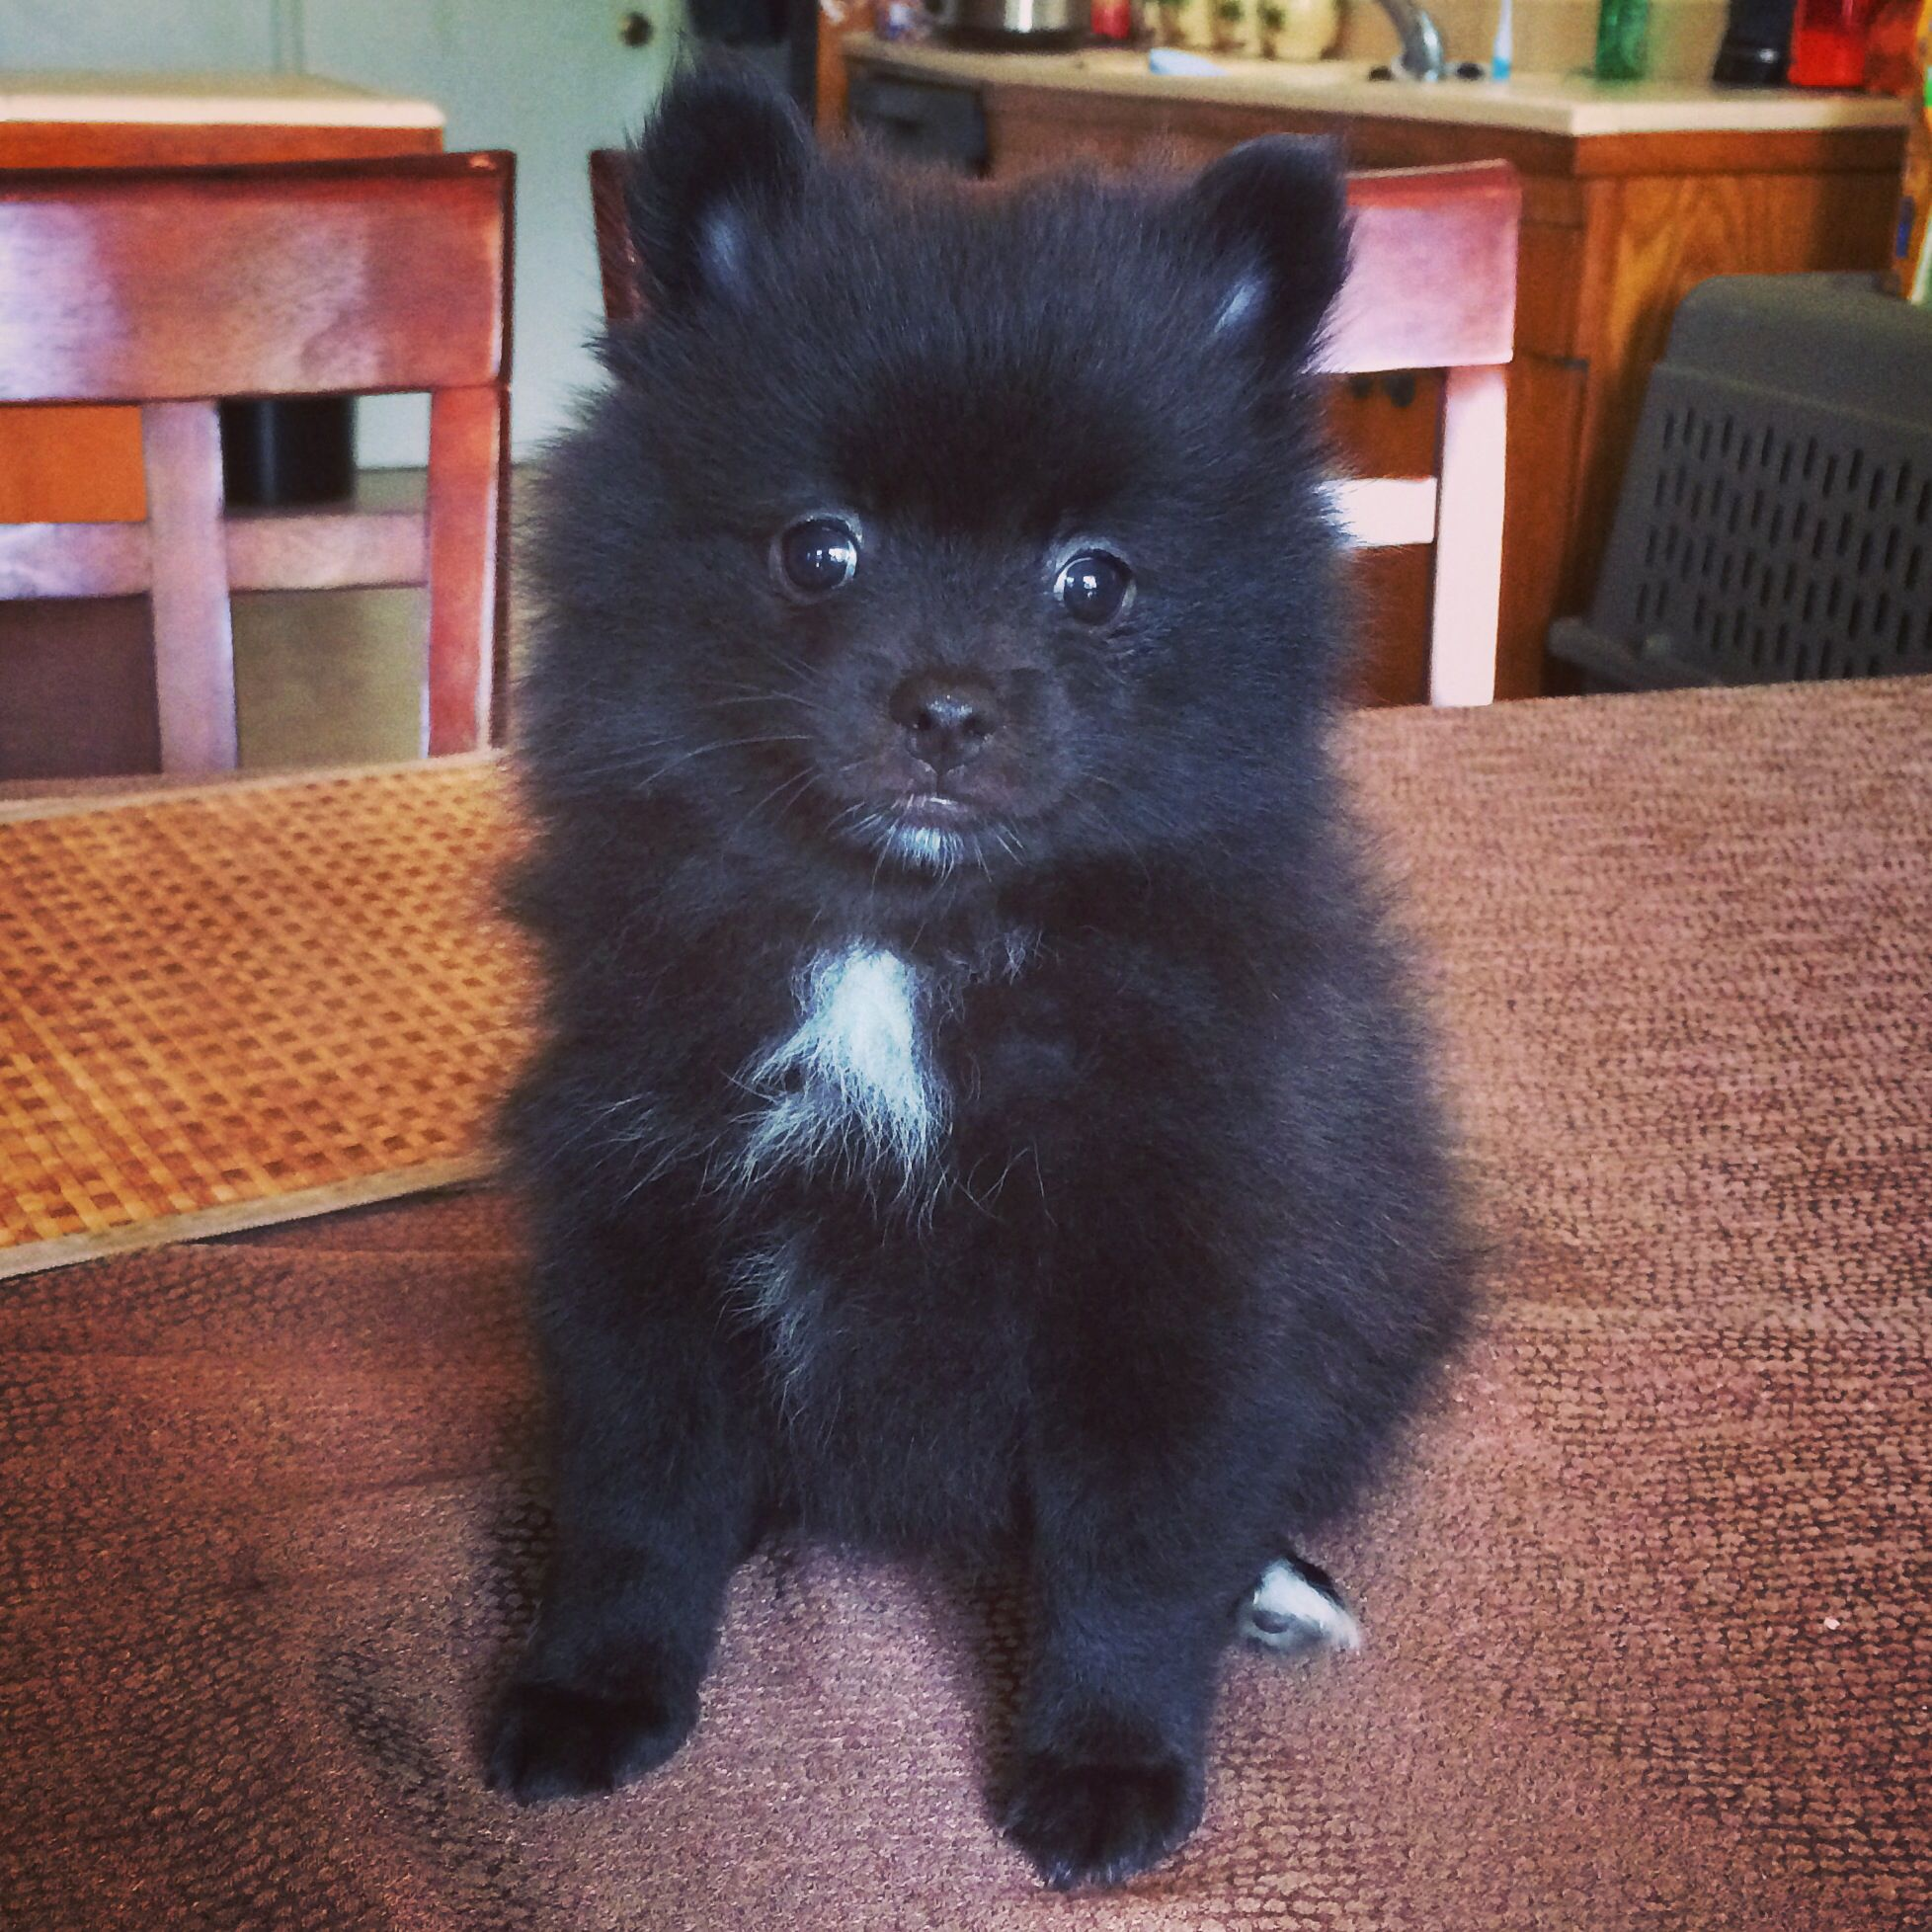 7 Week Old Black And White Tuxedo Male Pomeranian Puppy Dog Behavior Pomeranian Puppy Pomeranian Dog